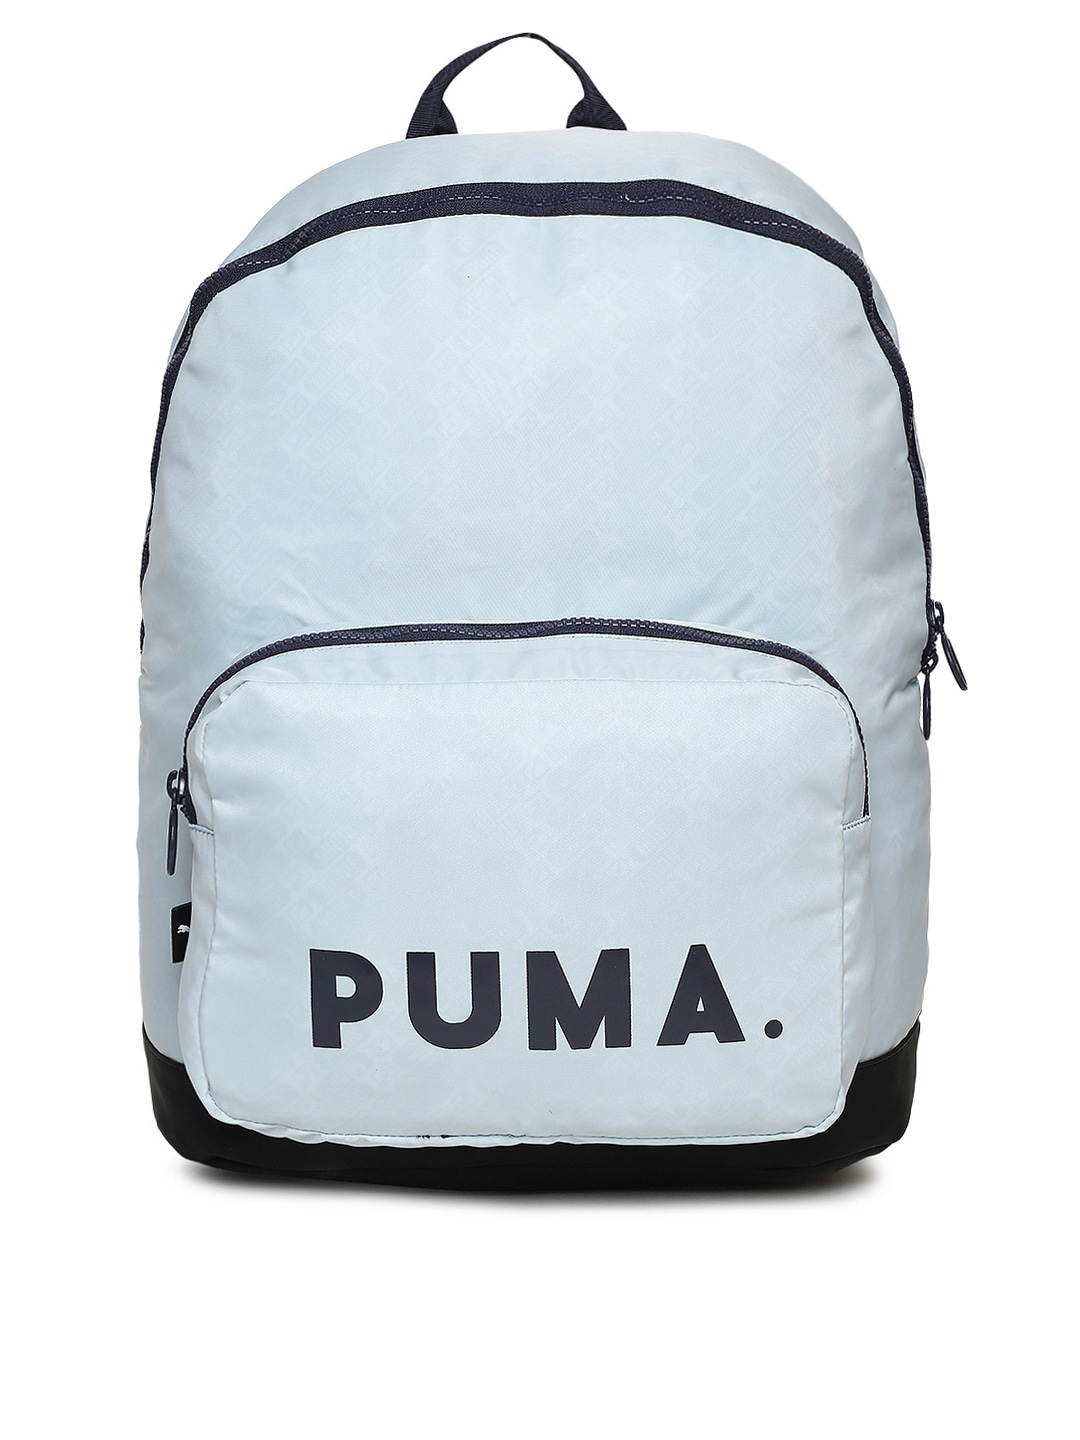 dad042a80a8c1 Puma Backpack For Kids Sandal - Buy Puma Backpack For Kids Sandal online in  India